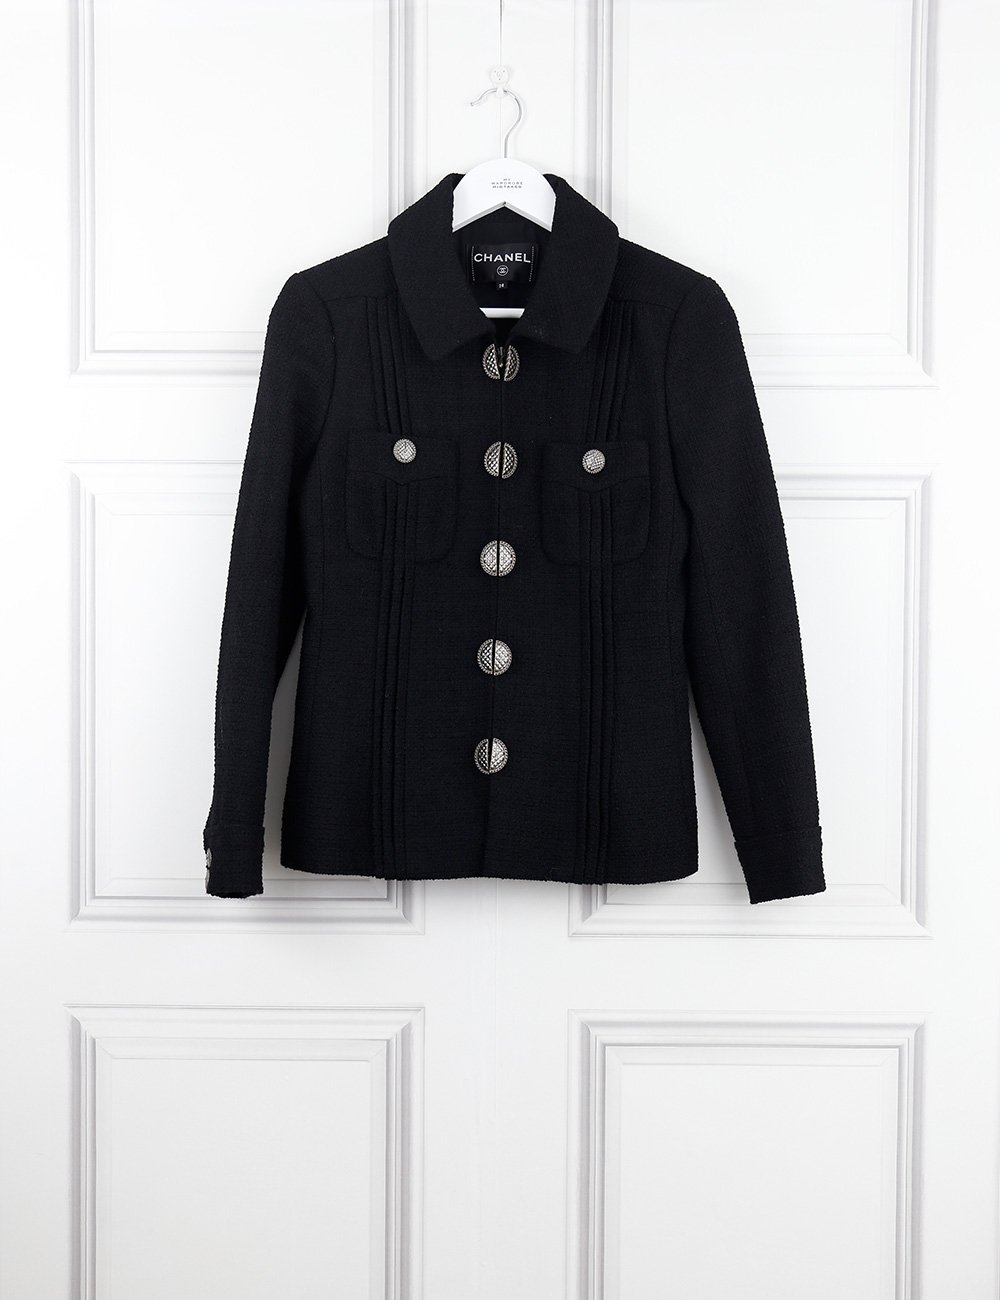 CHANEL CLOTHING 10UK-42IT-38FR / Black CHANEL Jacket with round buttons and two pockets